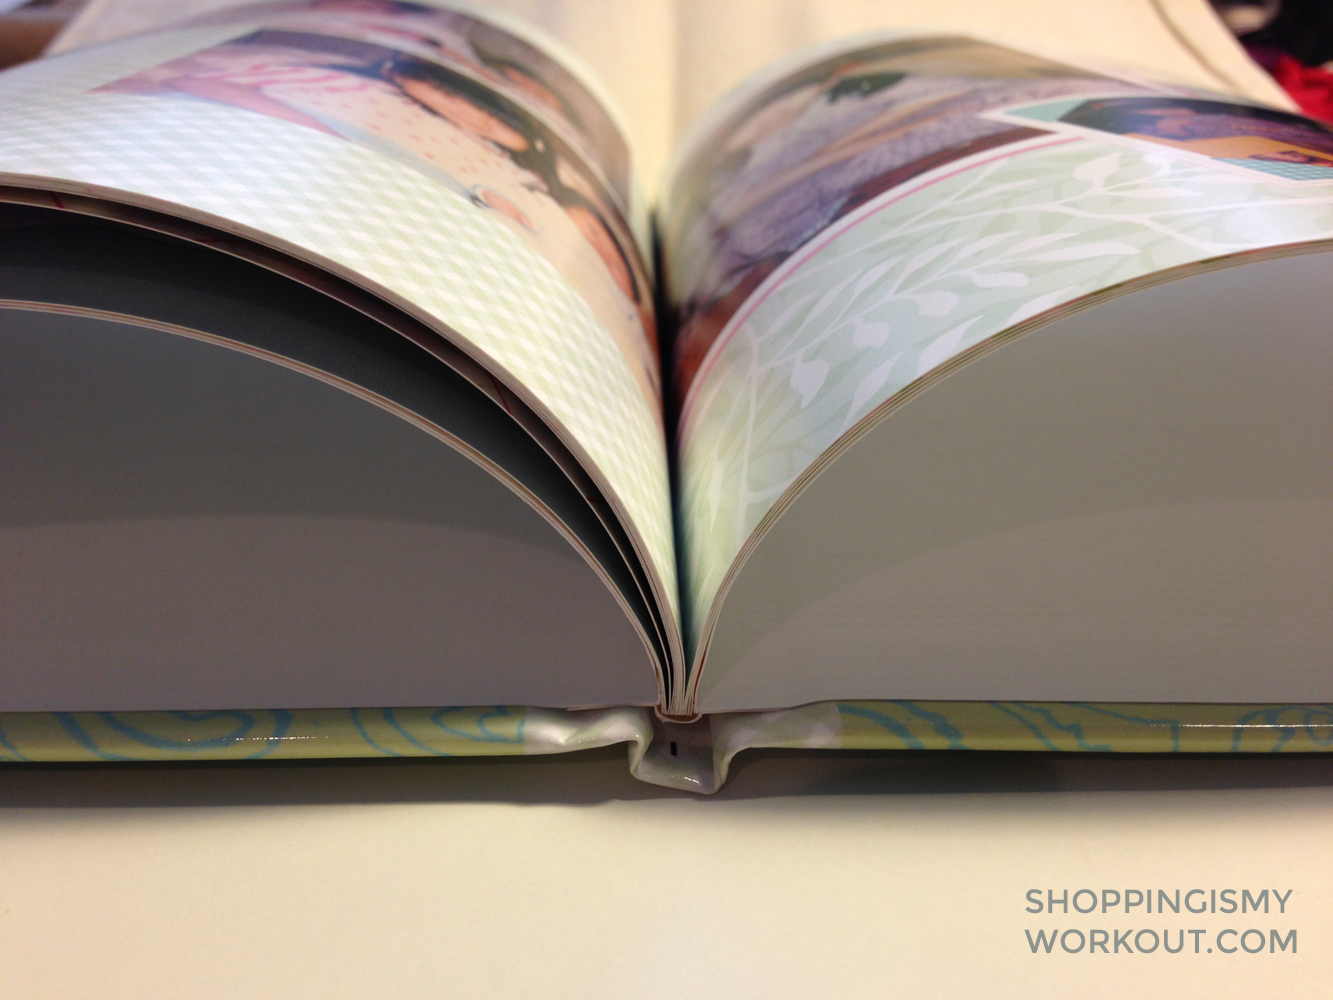 Photobook Pages